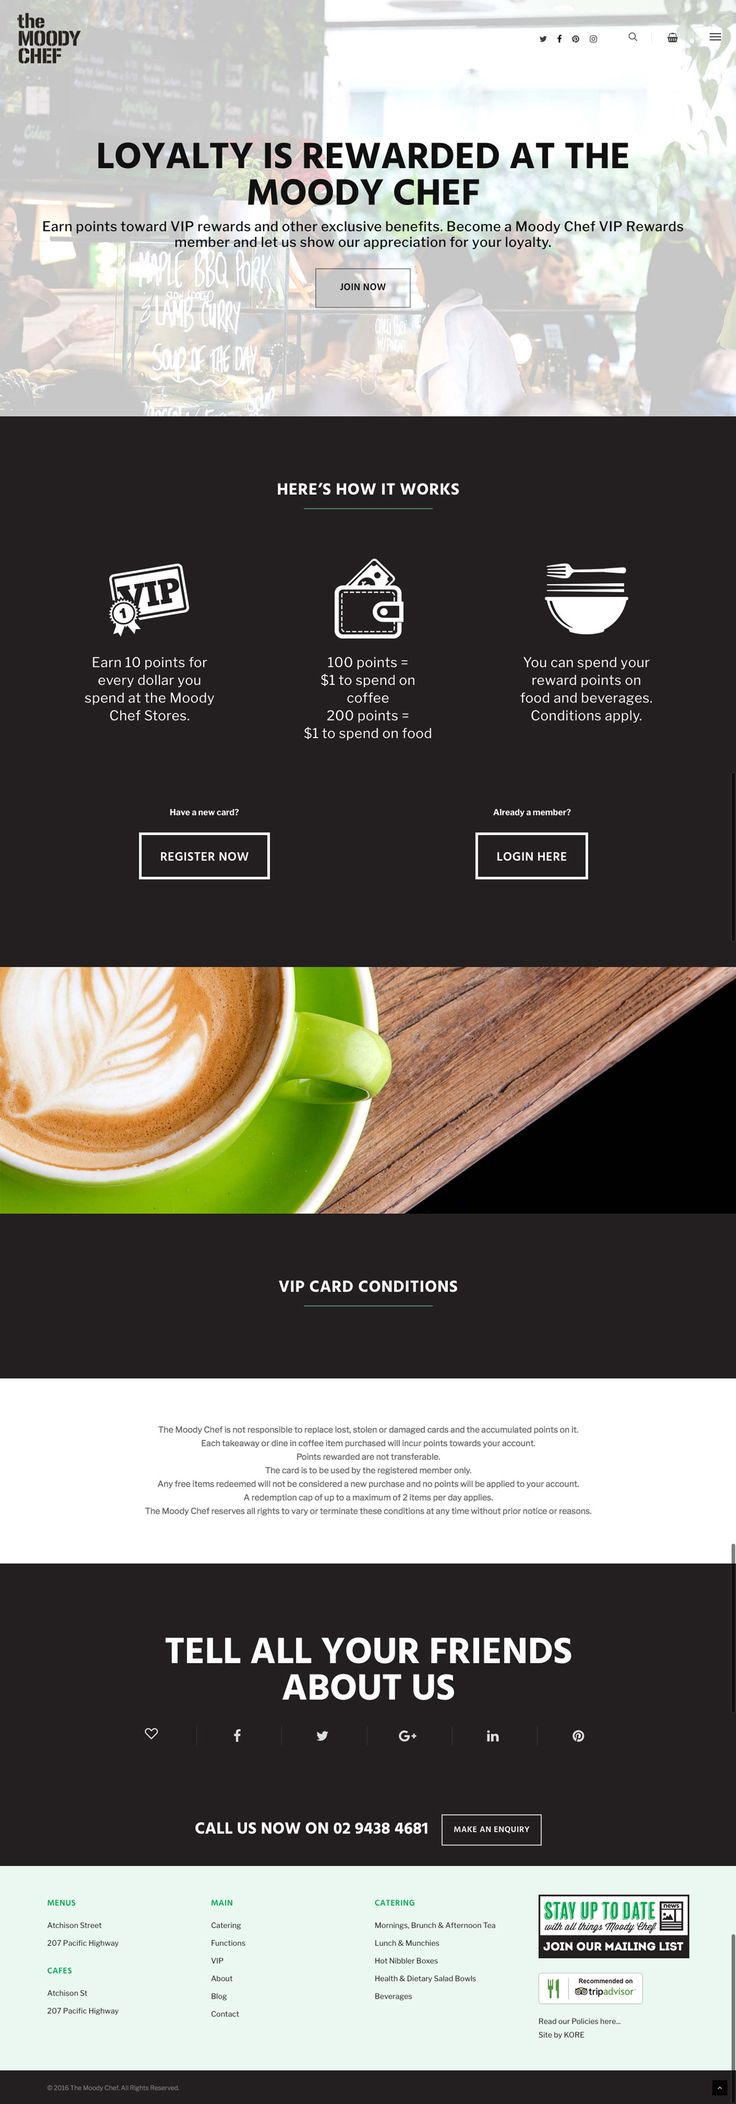 The Moody Chef's new responsive website by KORE (http://kore.digital/). VIP web page view.